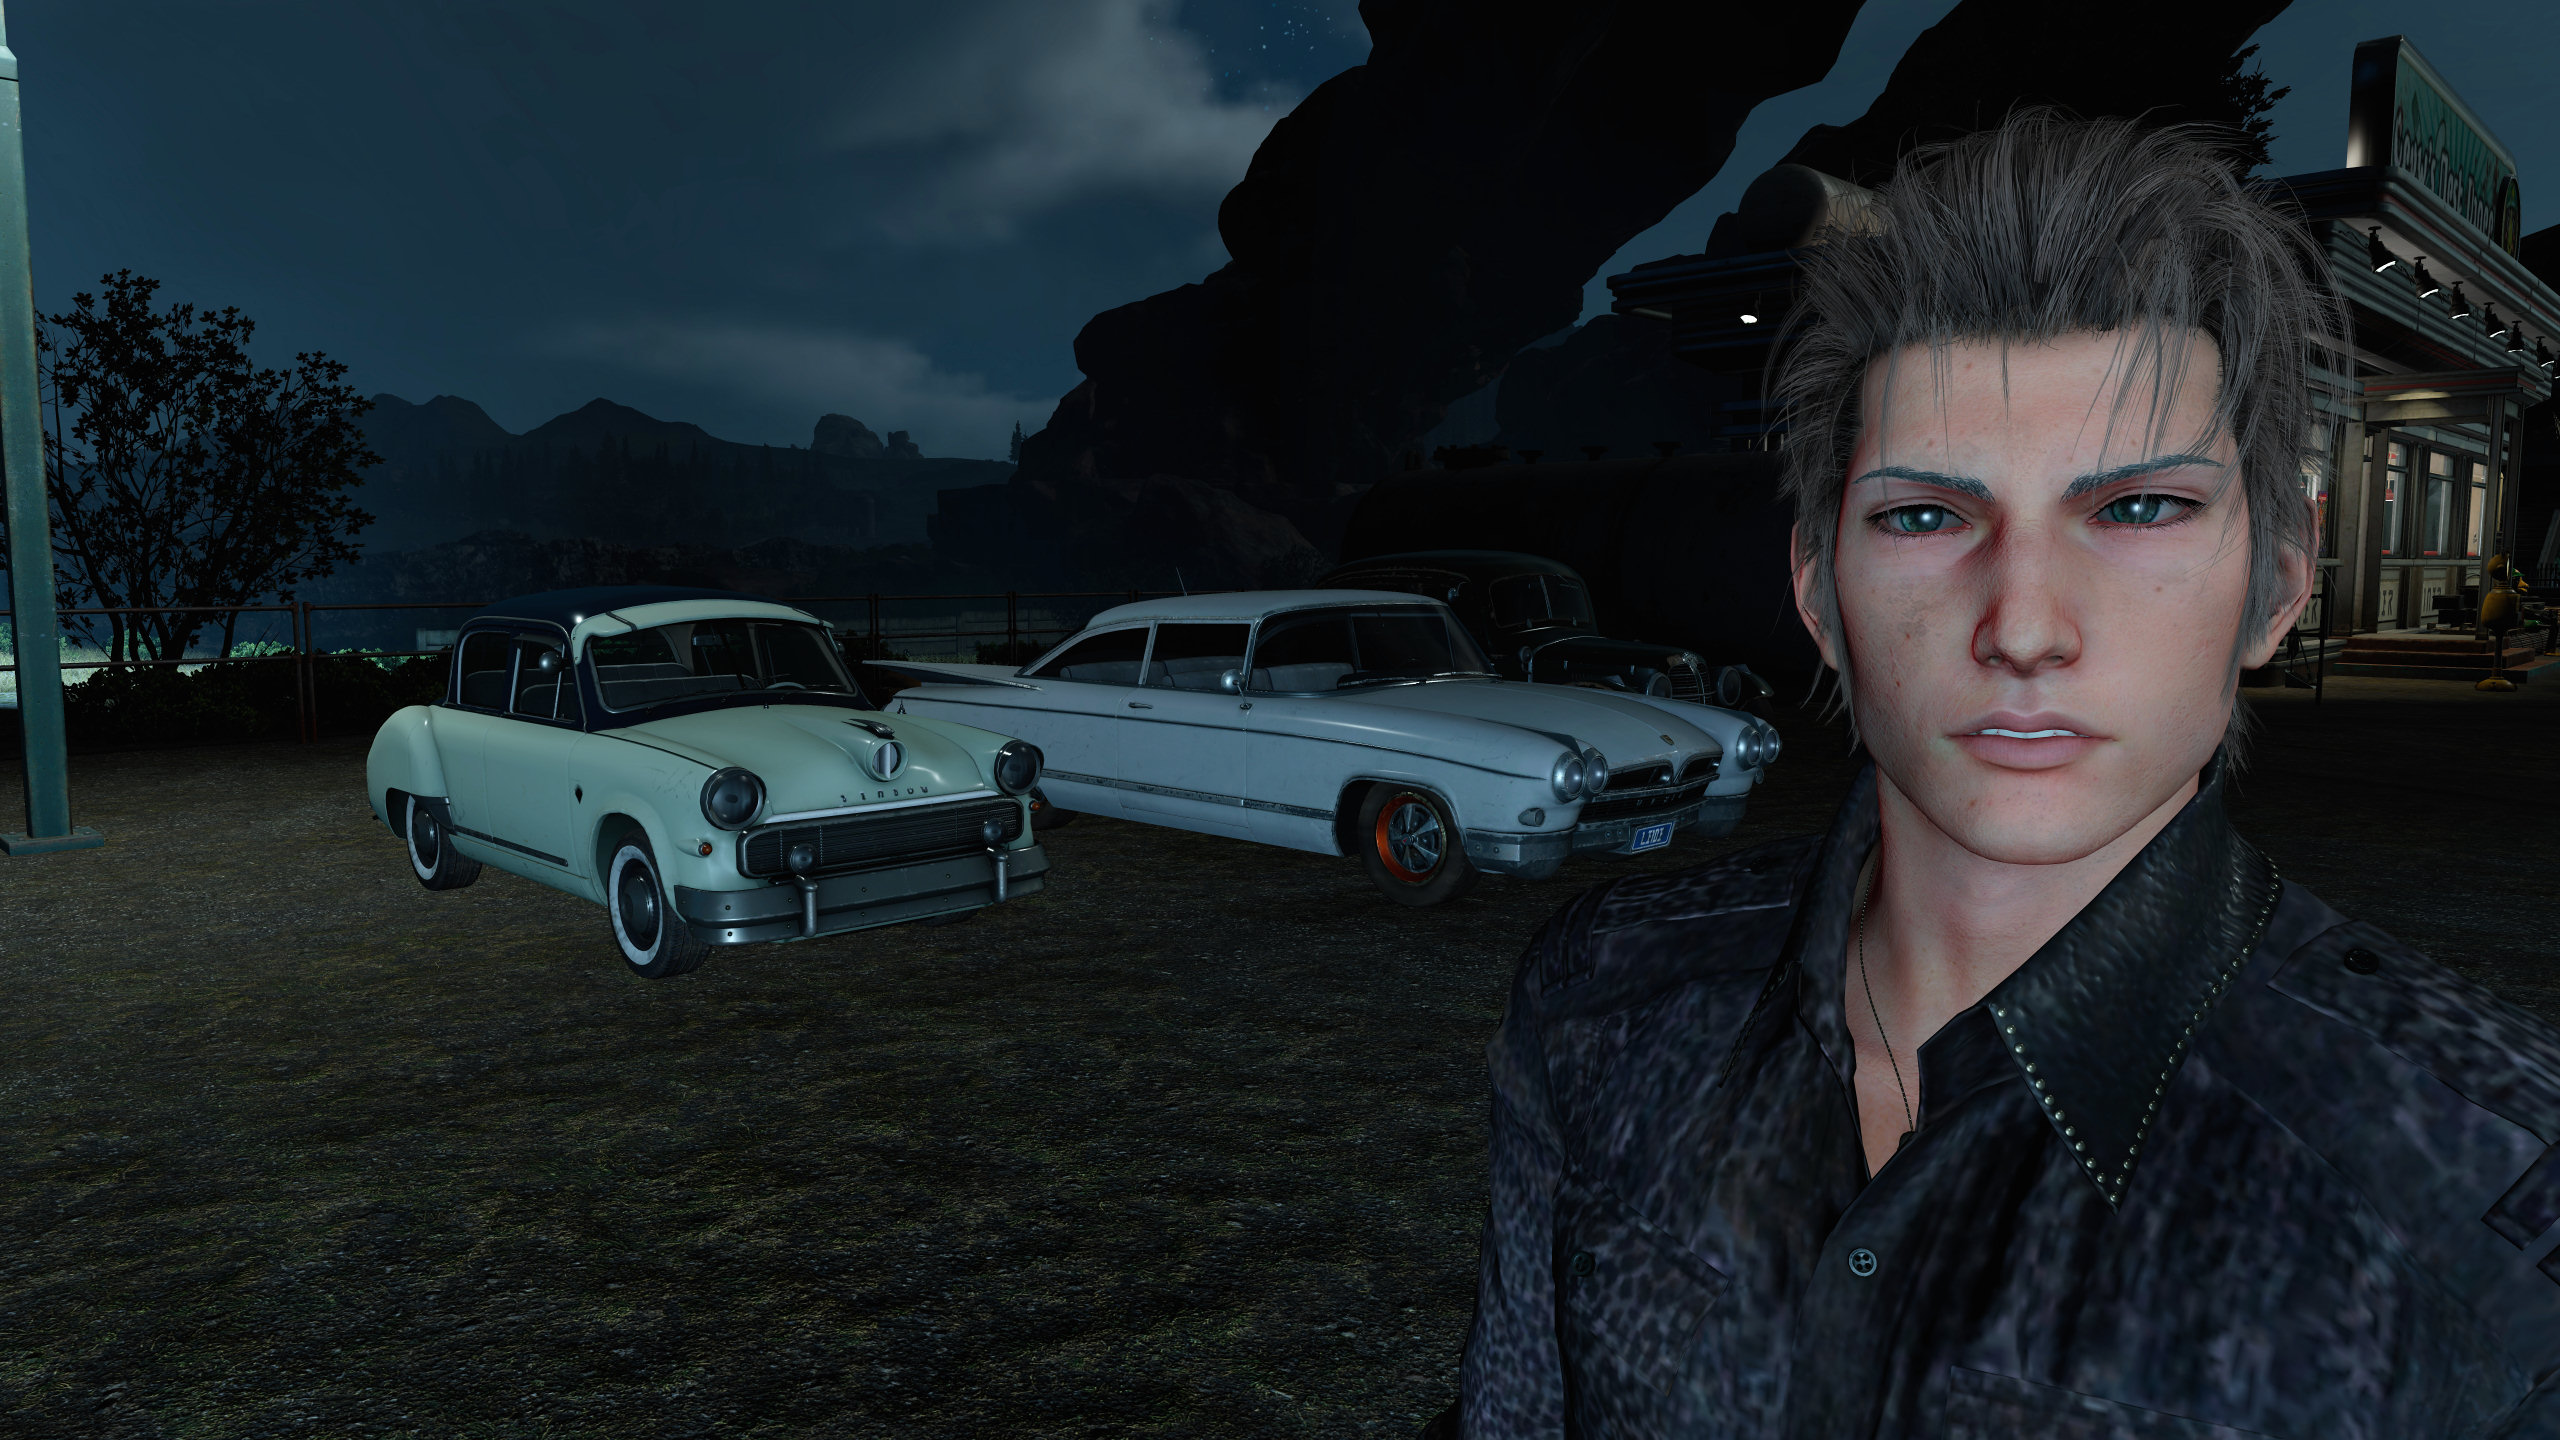 Final Fantasy XV PC Nude Mods Being Left Up To The Moral